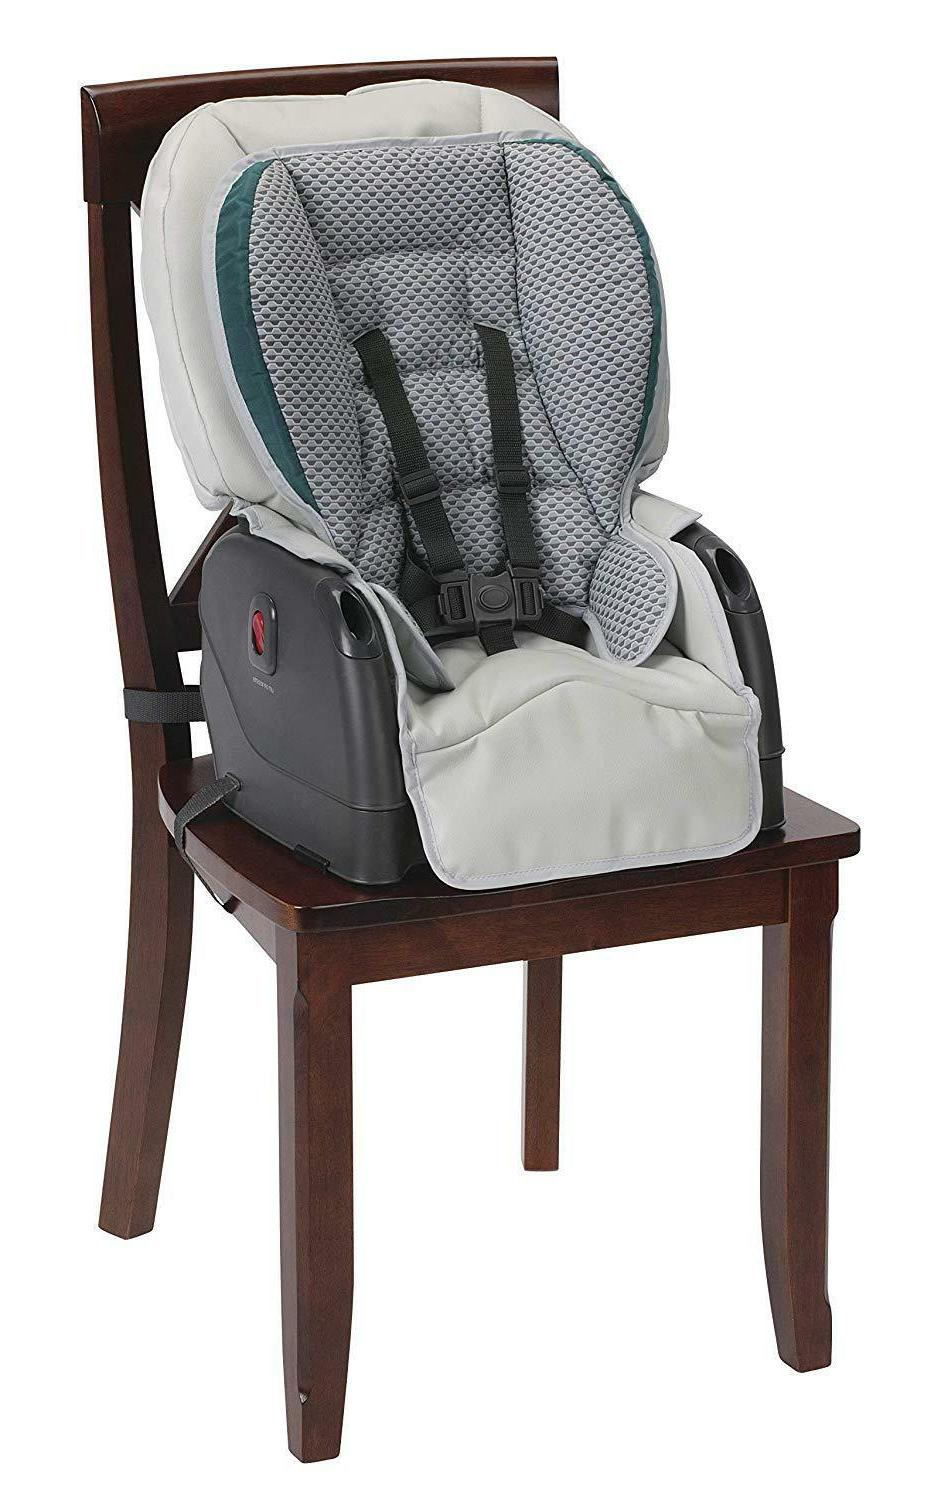 Graco Blossom Highchair,